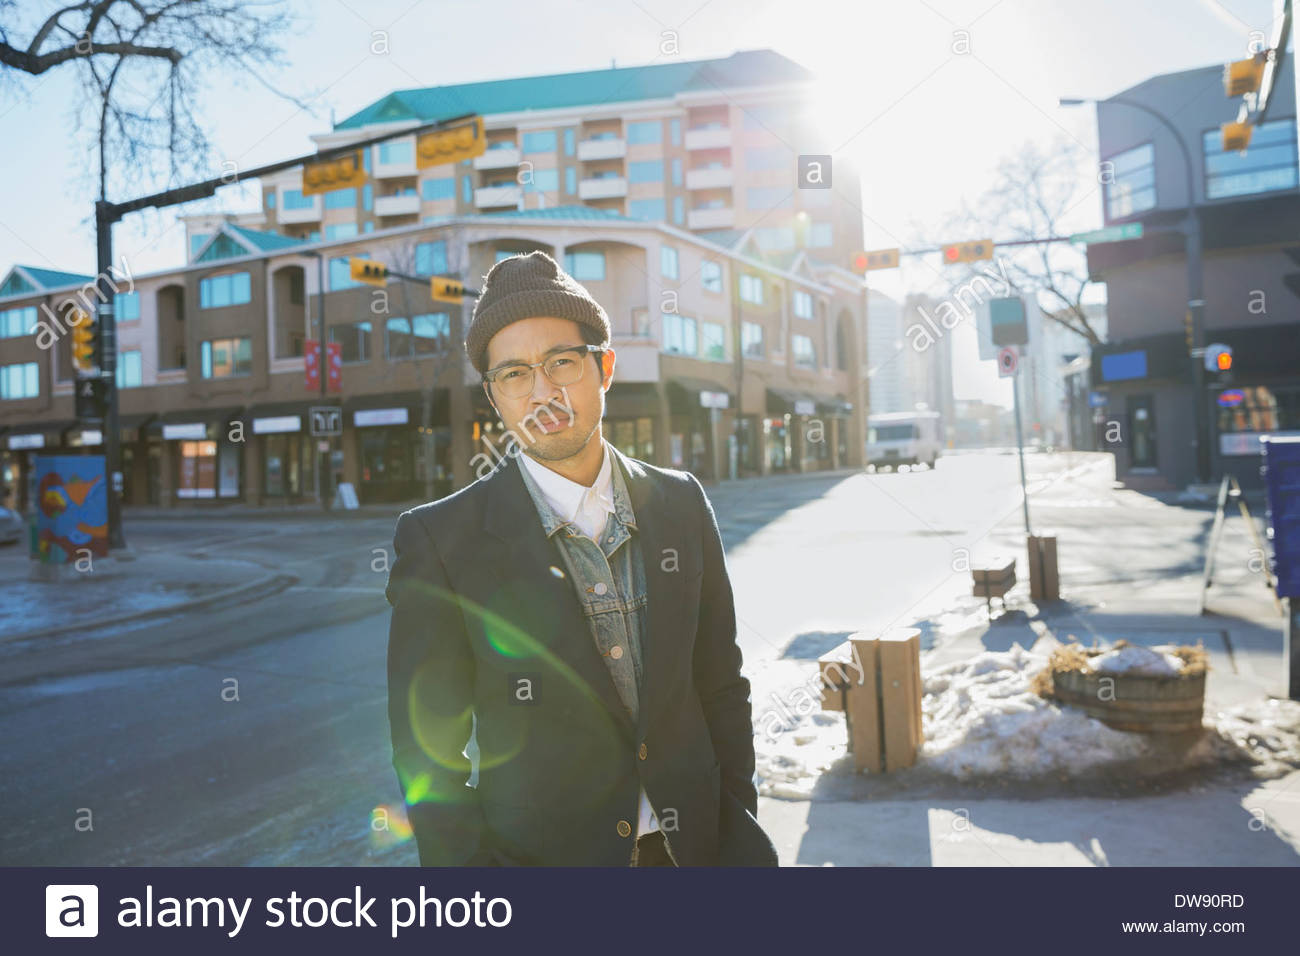 Portrait of confident man standing on city street - Stock Image